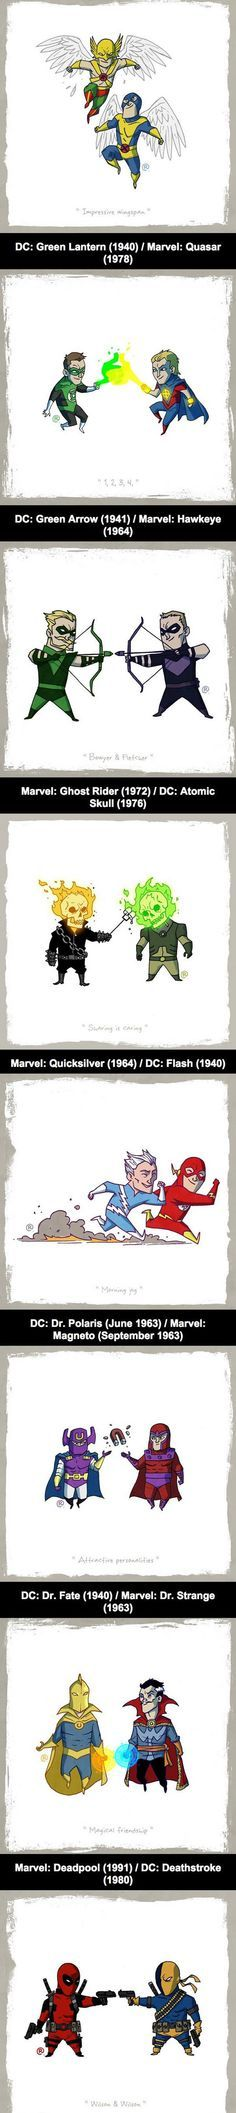 Marvel Vs DC: Caracteres equivalentes